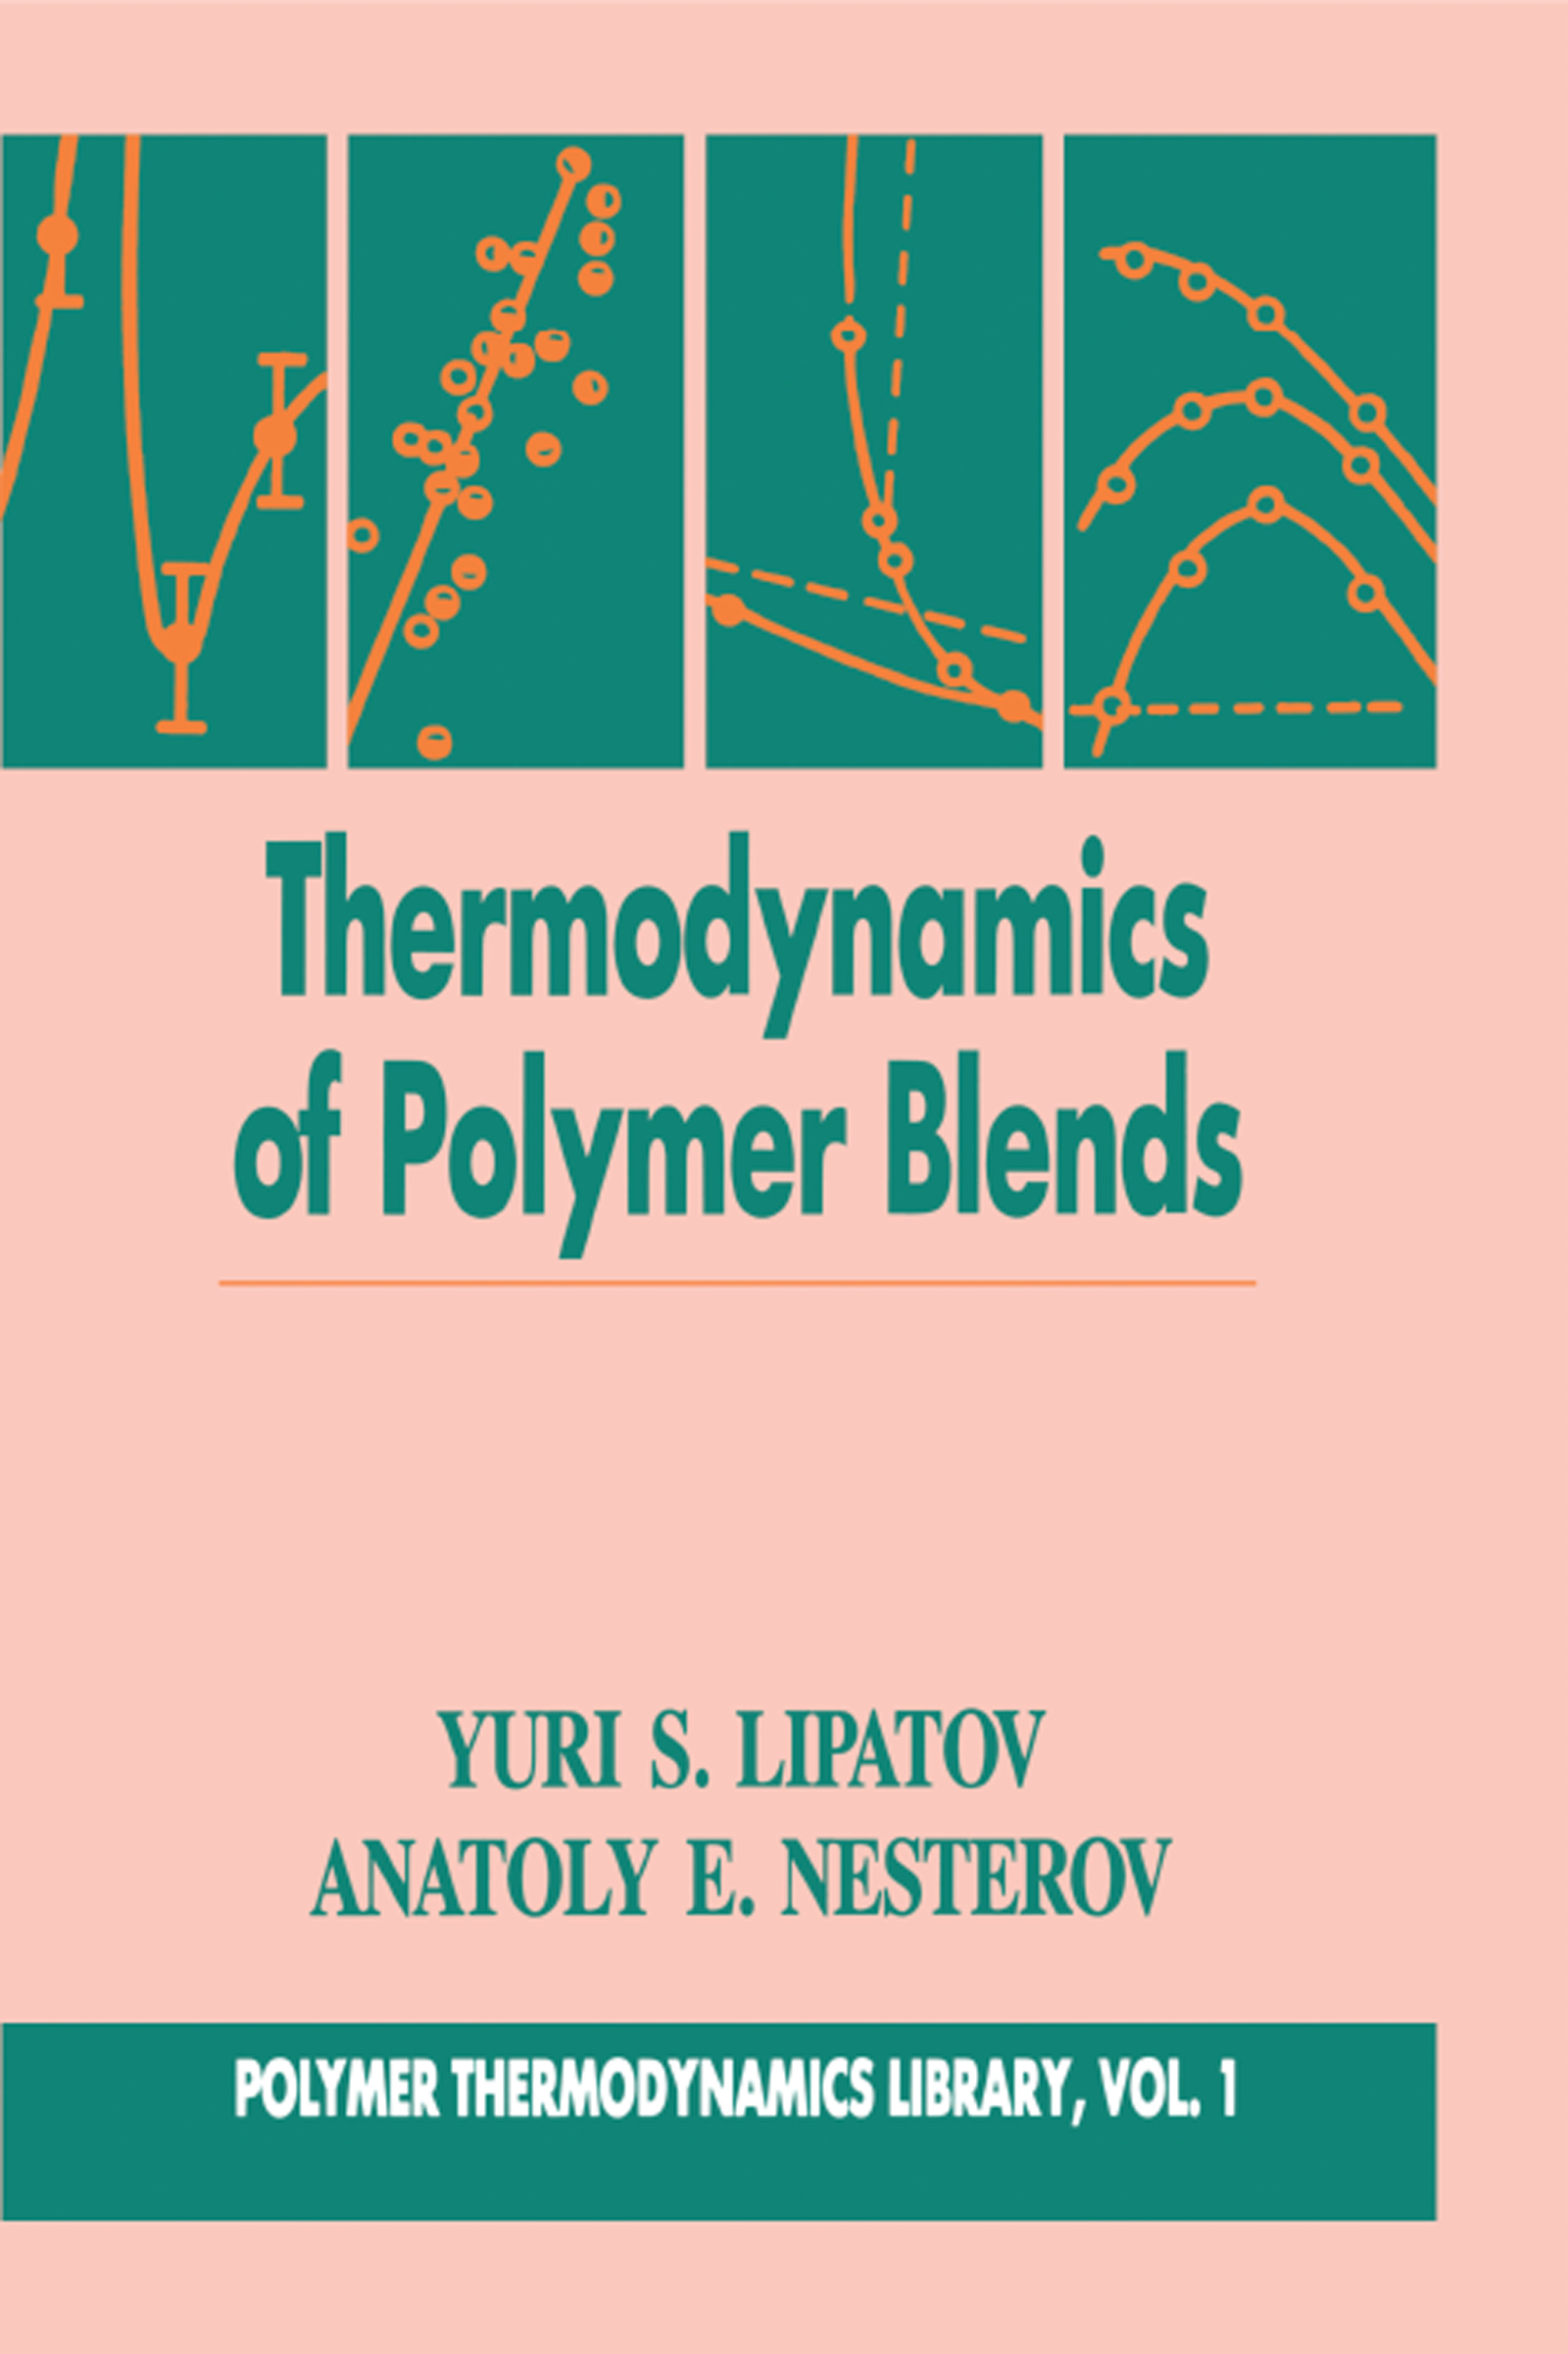 Thermodynamics of Polymer Blends, Volume I